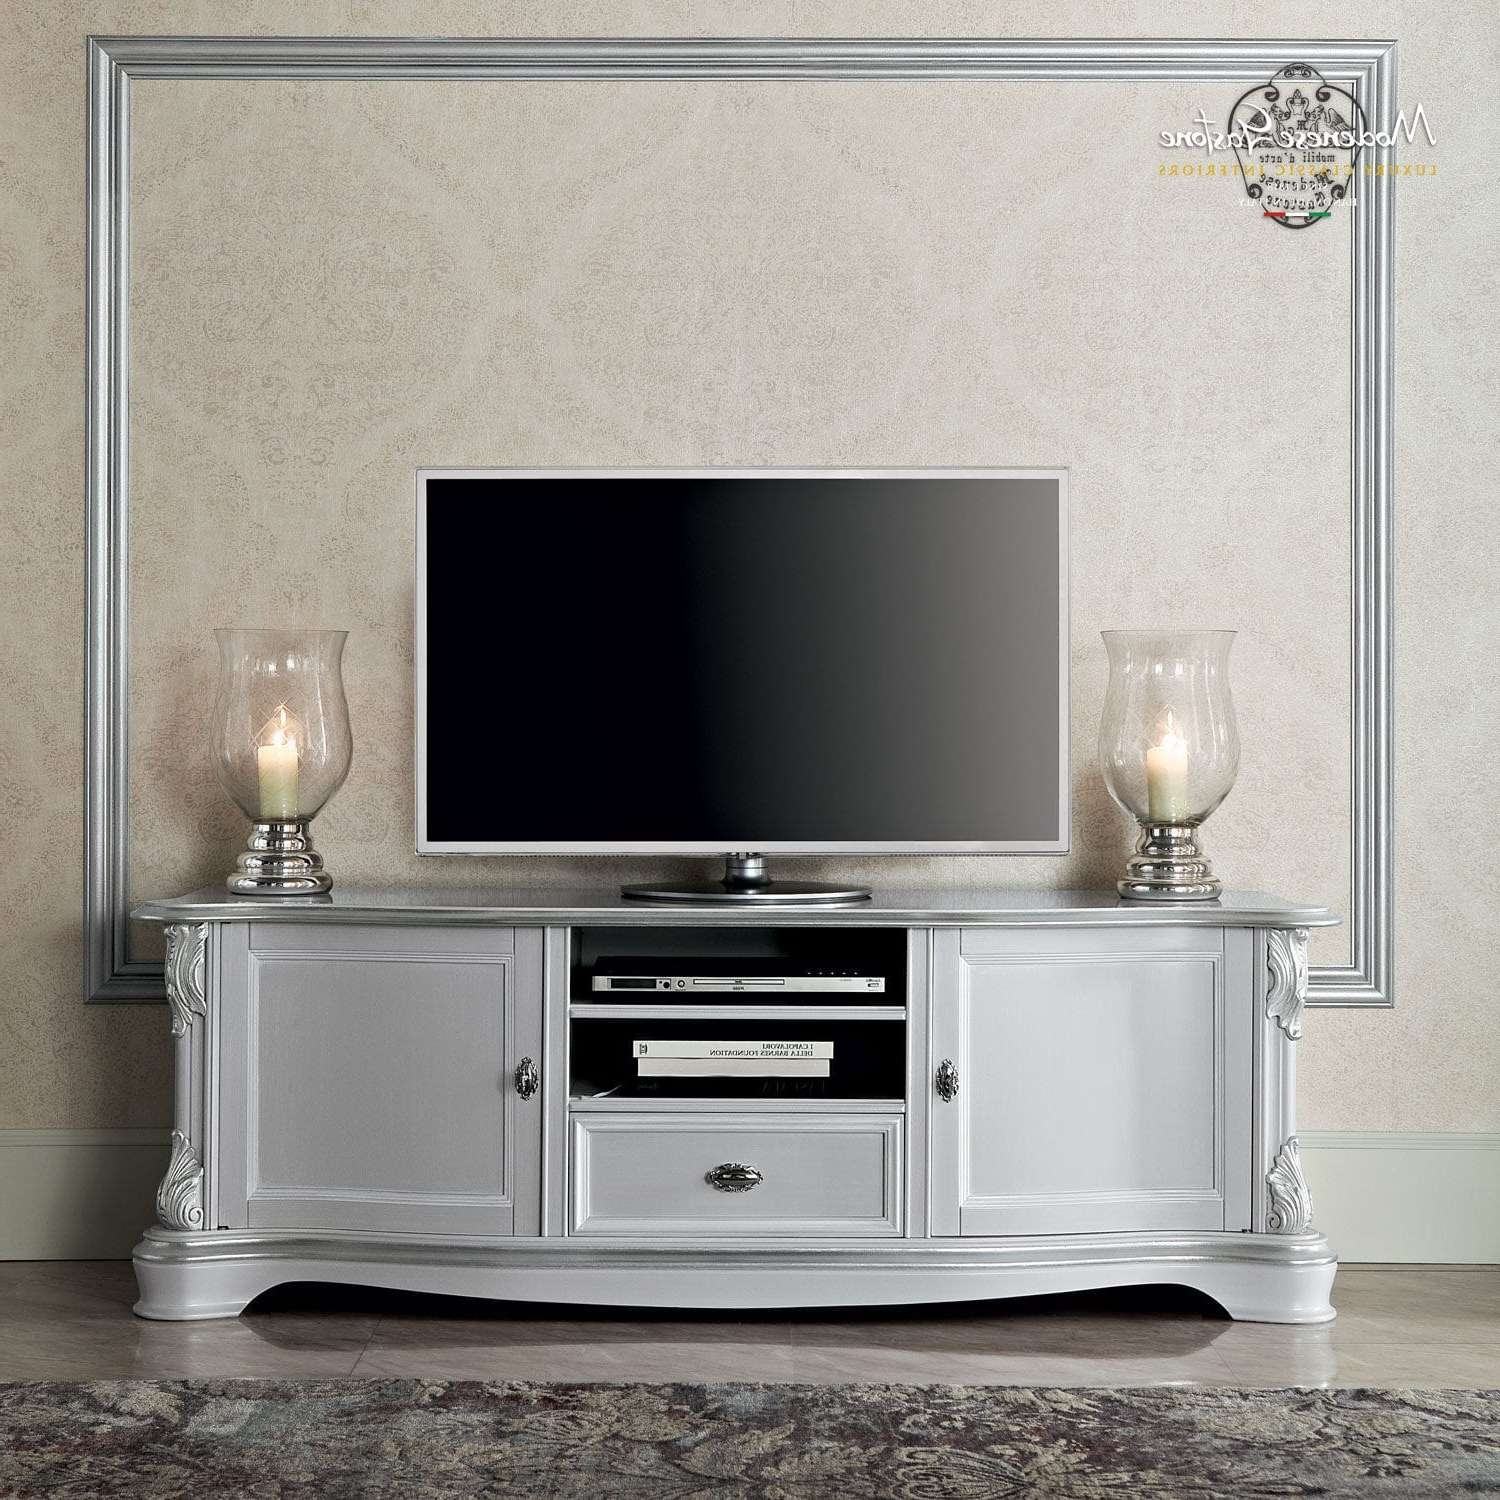 Classic Tv Cabinet / Solid Wood – Bella Vita – Modenese Gastone Inside Luxury Tv Stands (View 3 of 15)